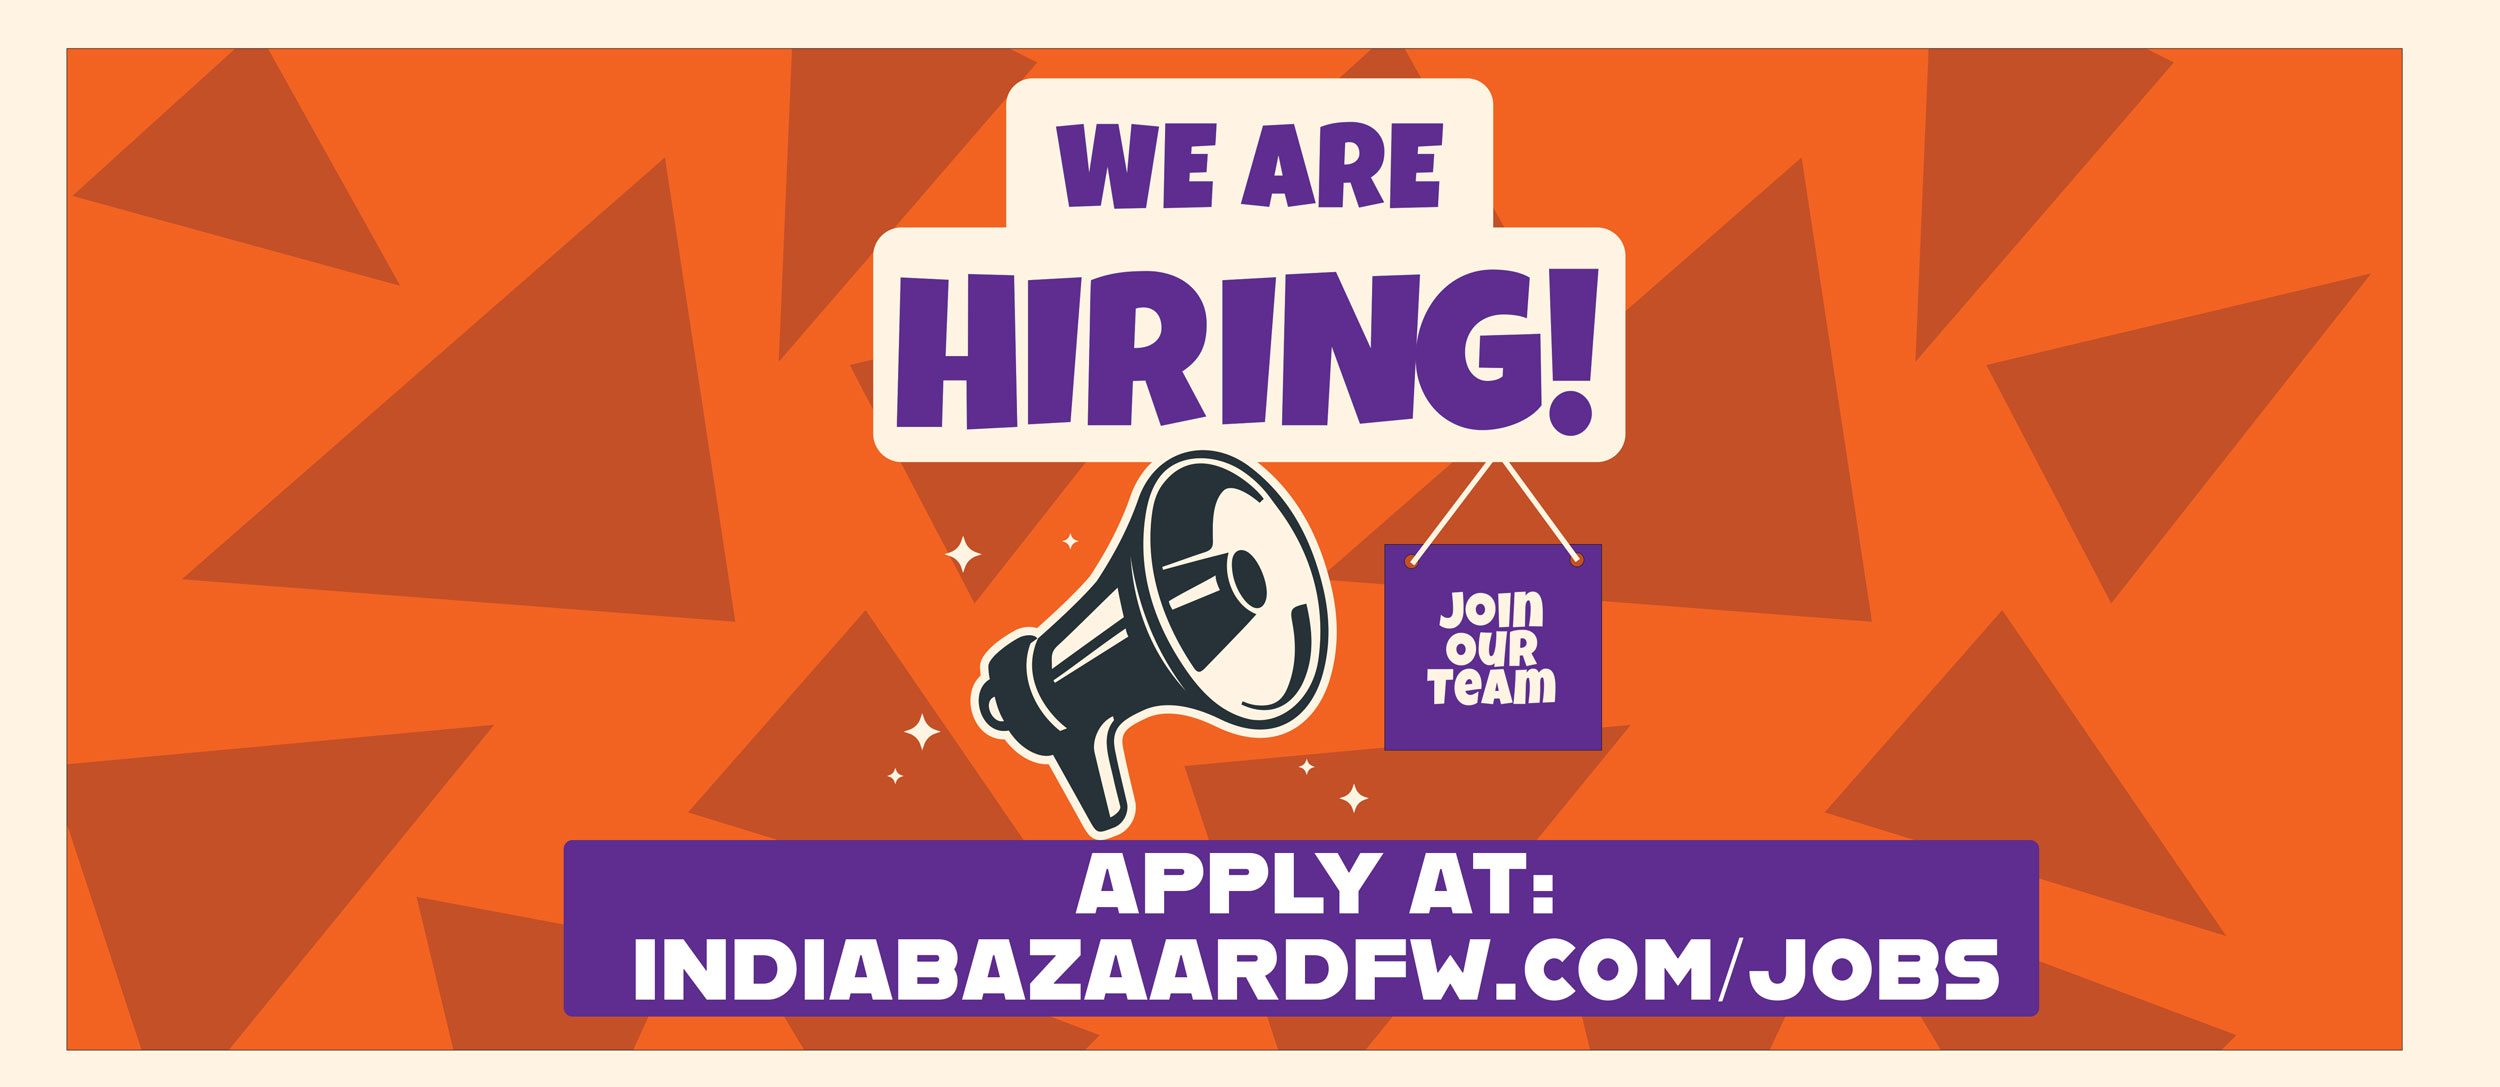 We-Are-Hiring-Flyer